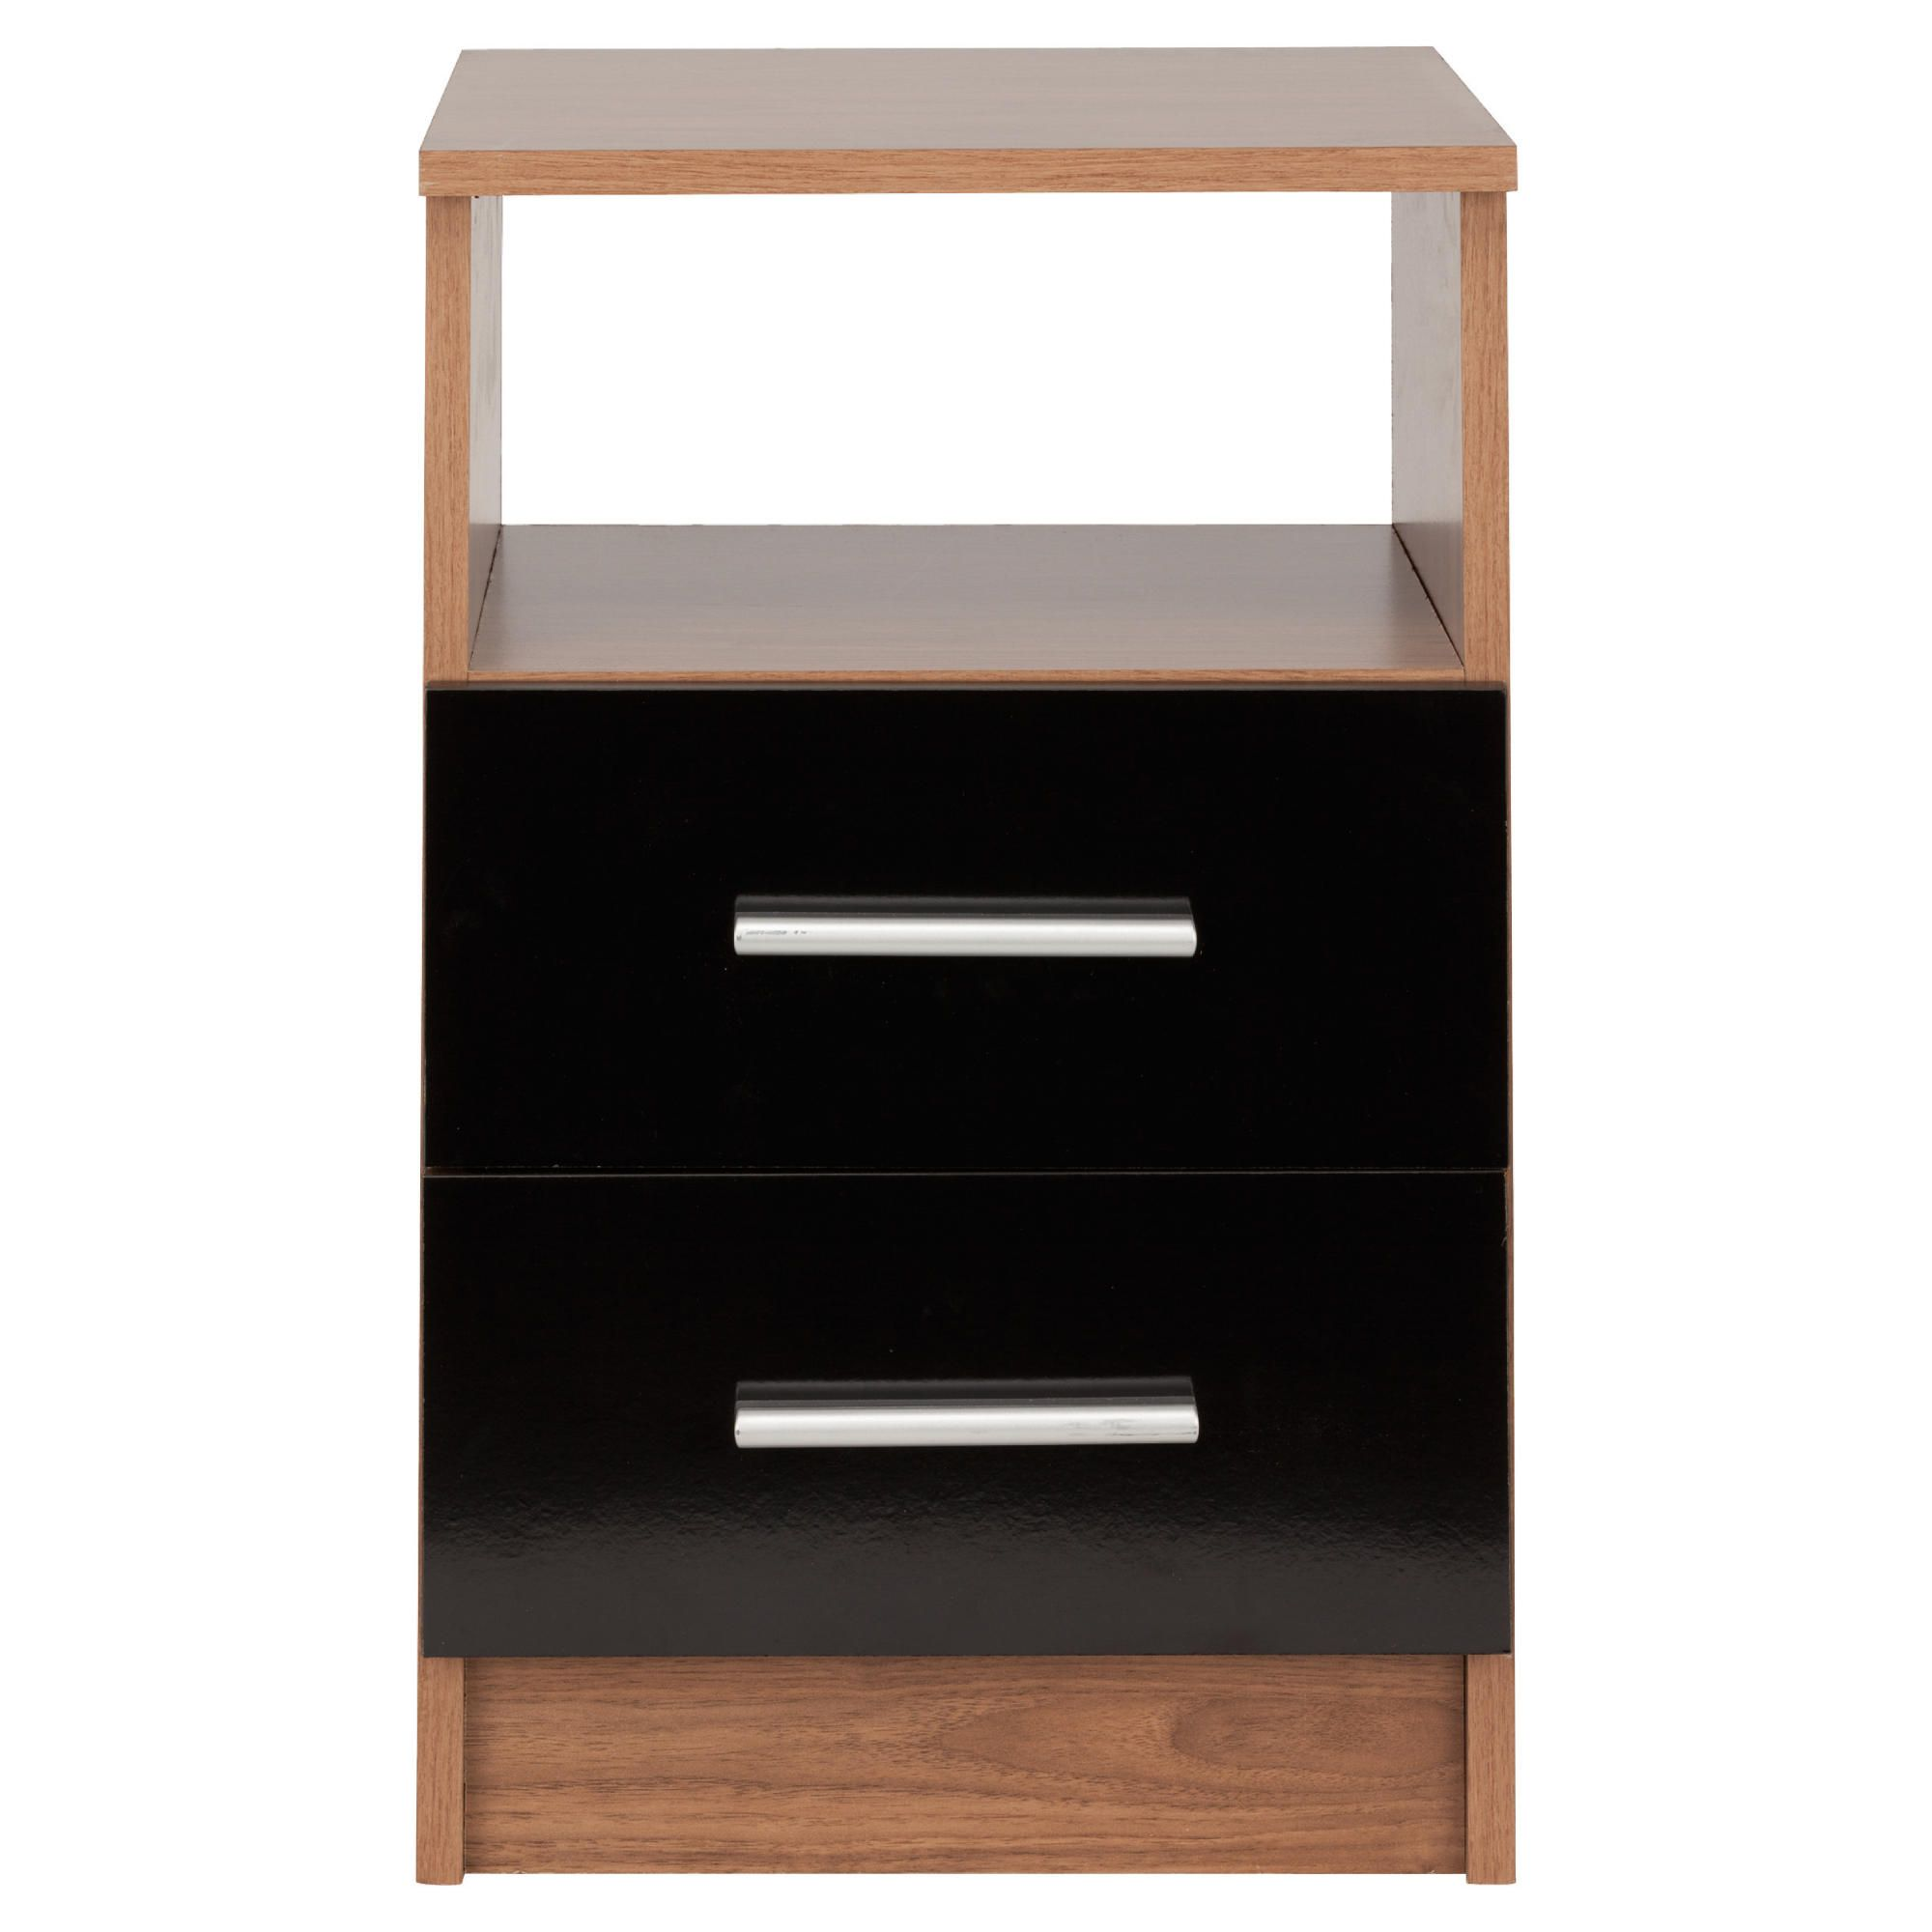 Black Gloss Bedside Tables and Cabinets Shop Gloss  : 220 1187PITPS1531504wid2000amphei2000 from shopglossfurniture.co.uk size 2000 x 2000 jpeg 128kB